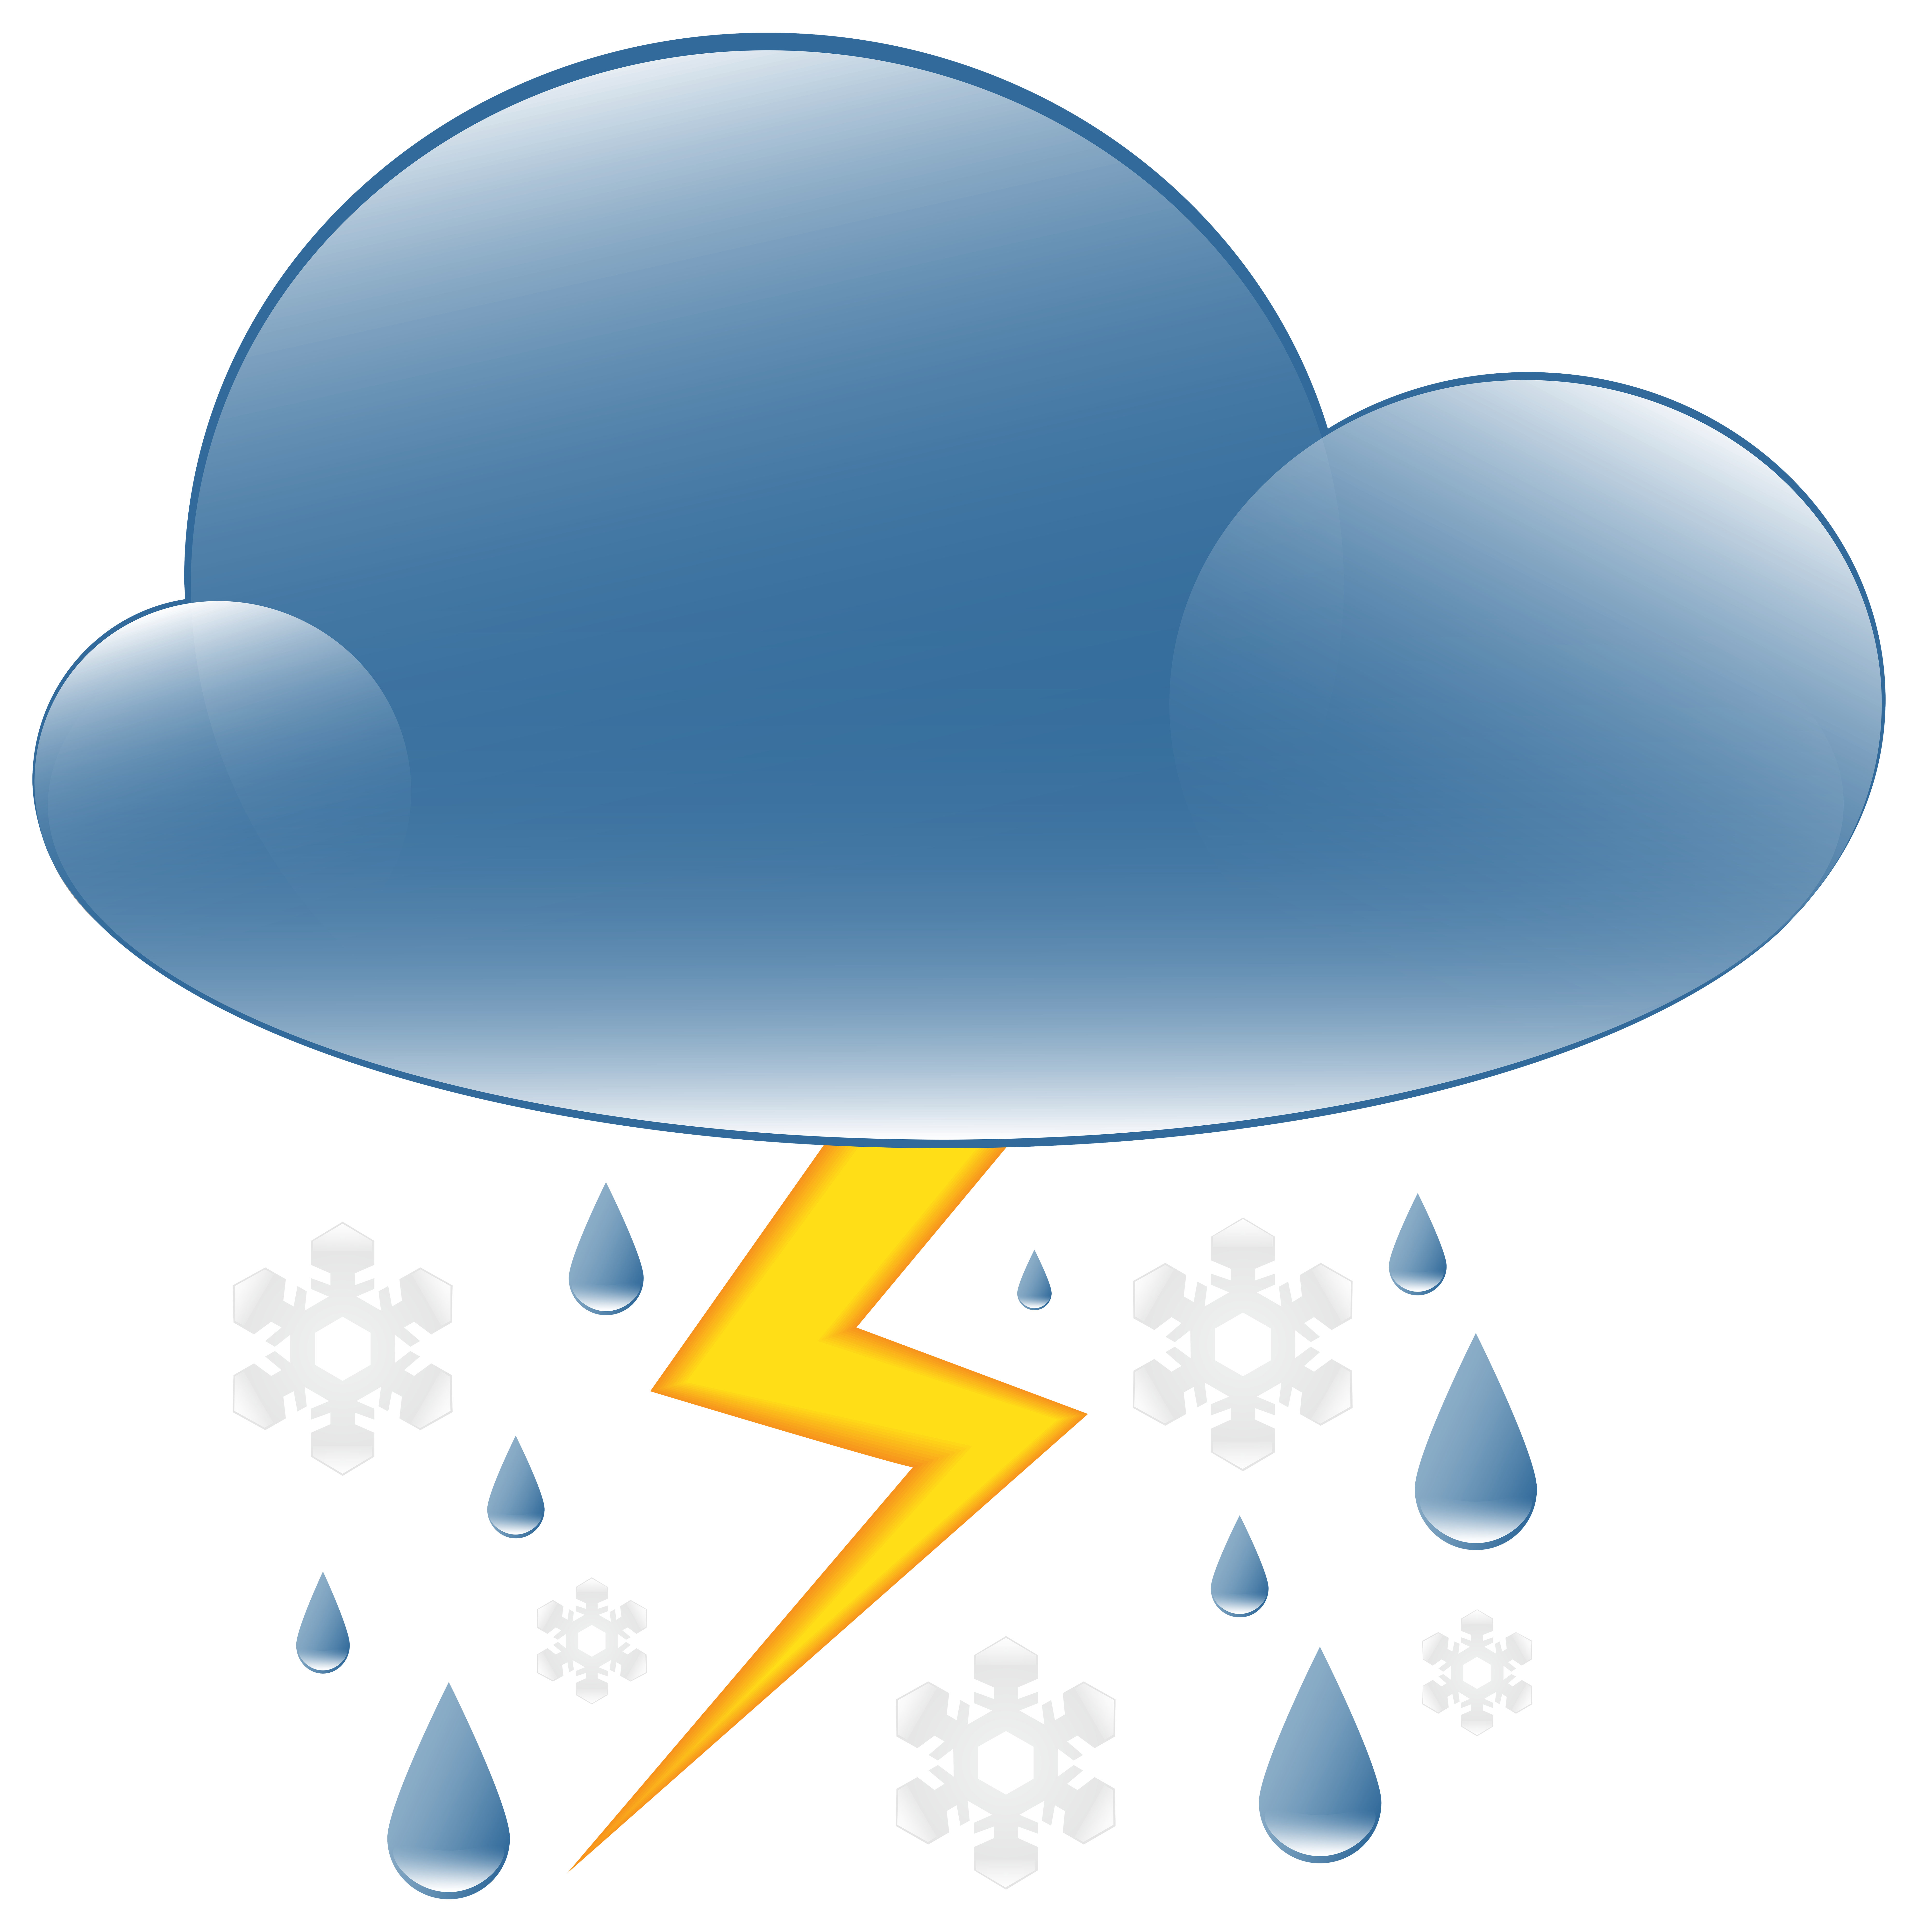 Rainy and thunder clipart vector transparent download Thunder Rain and Snow Weather Icon PNG Clip Art - Best WEB ... vector transparent download